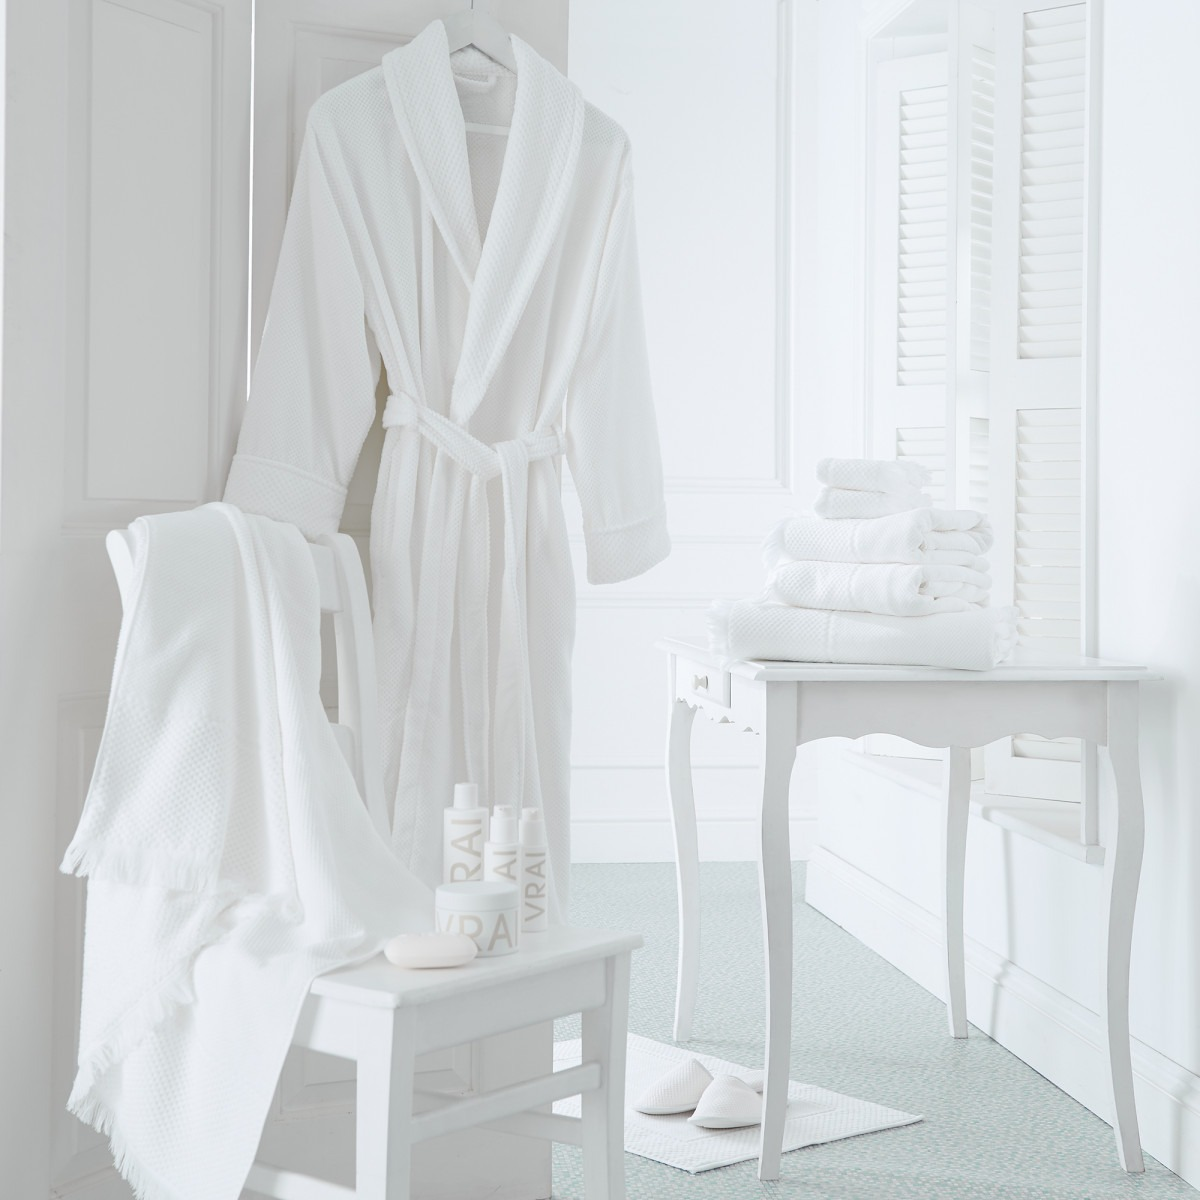 Whire Spa Robe In A Box